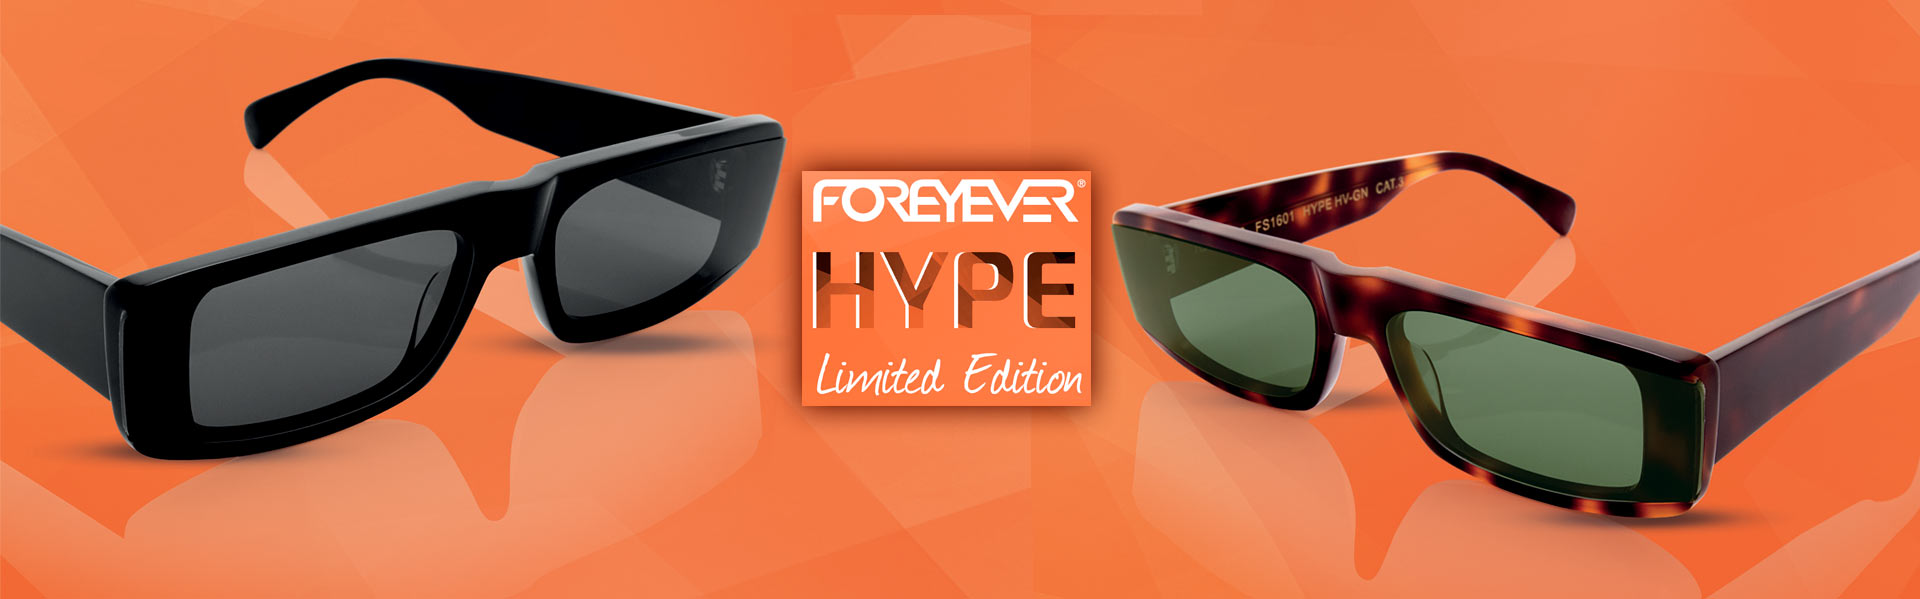 8035019SLIDER-2020-mod-Hype-Limited-edition